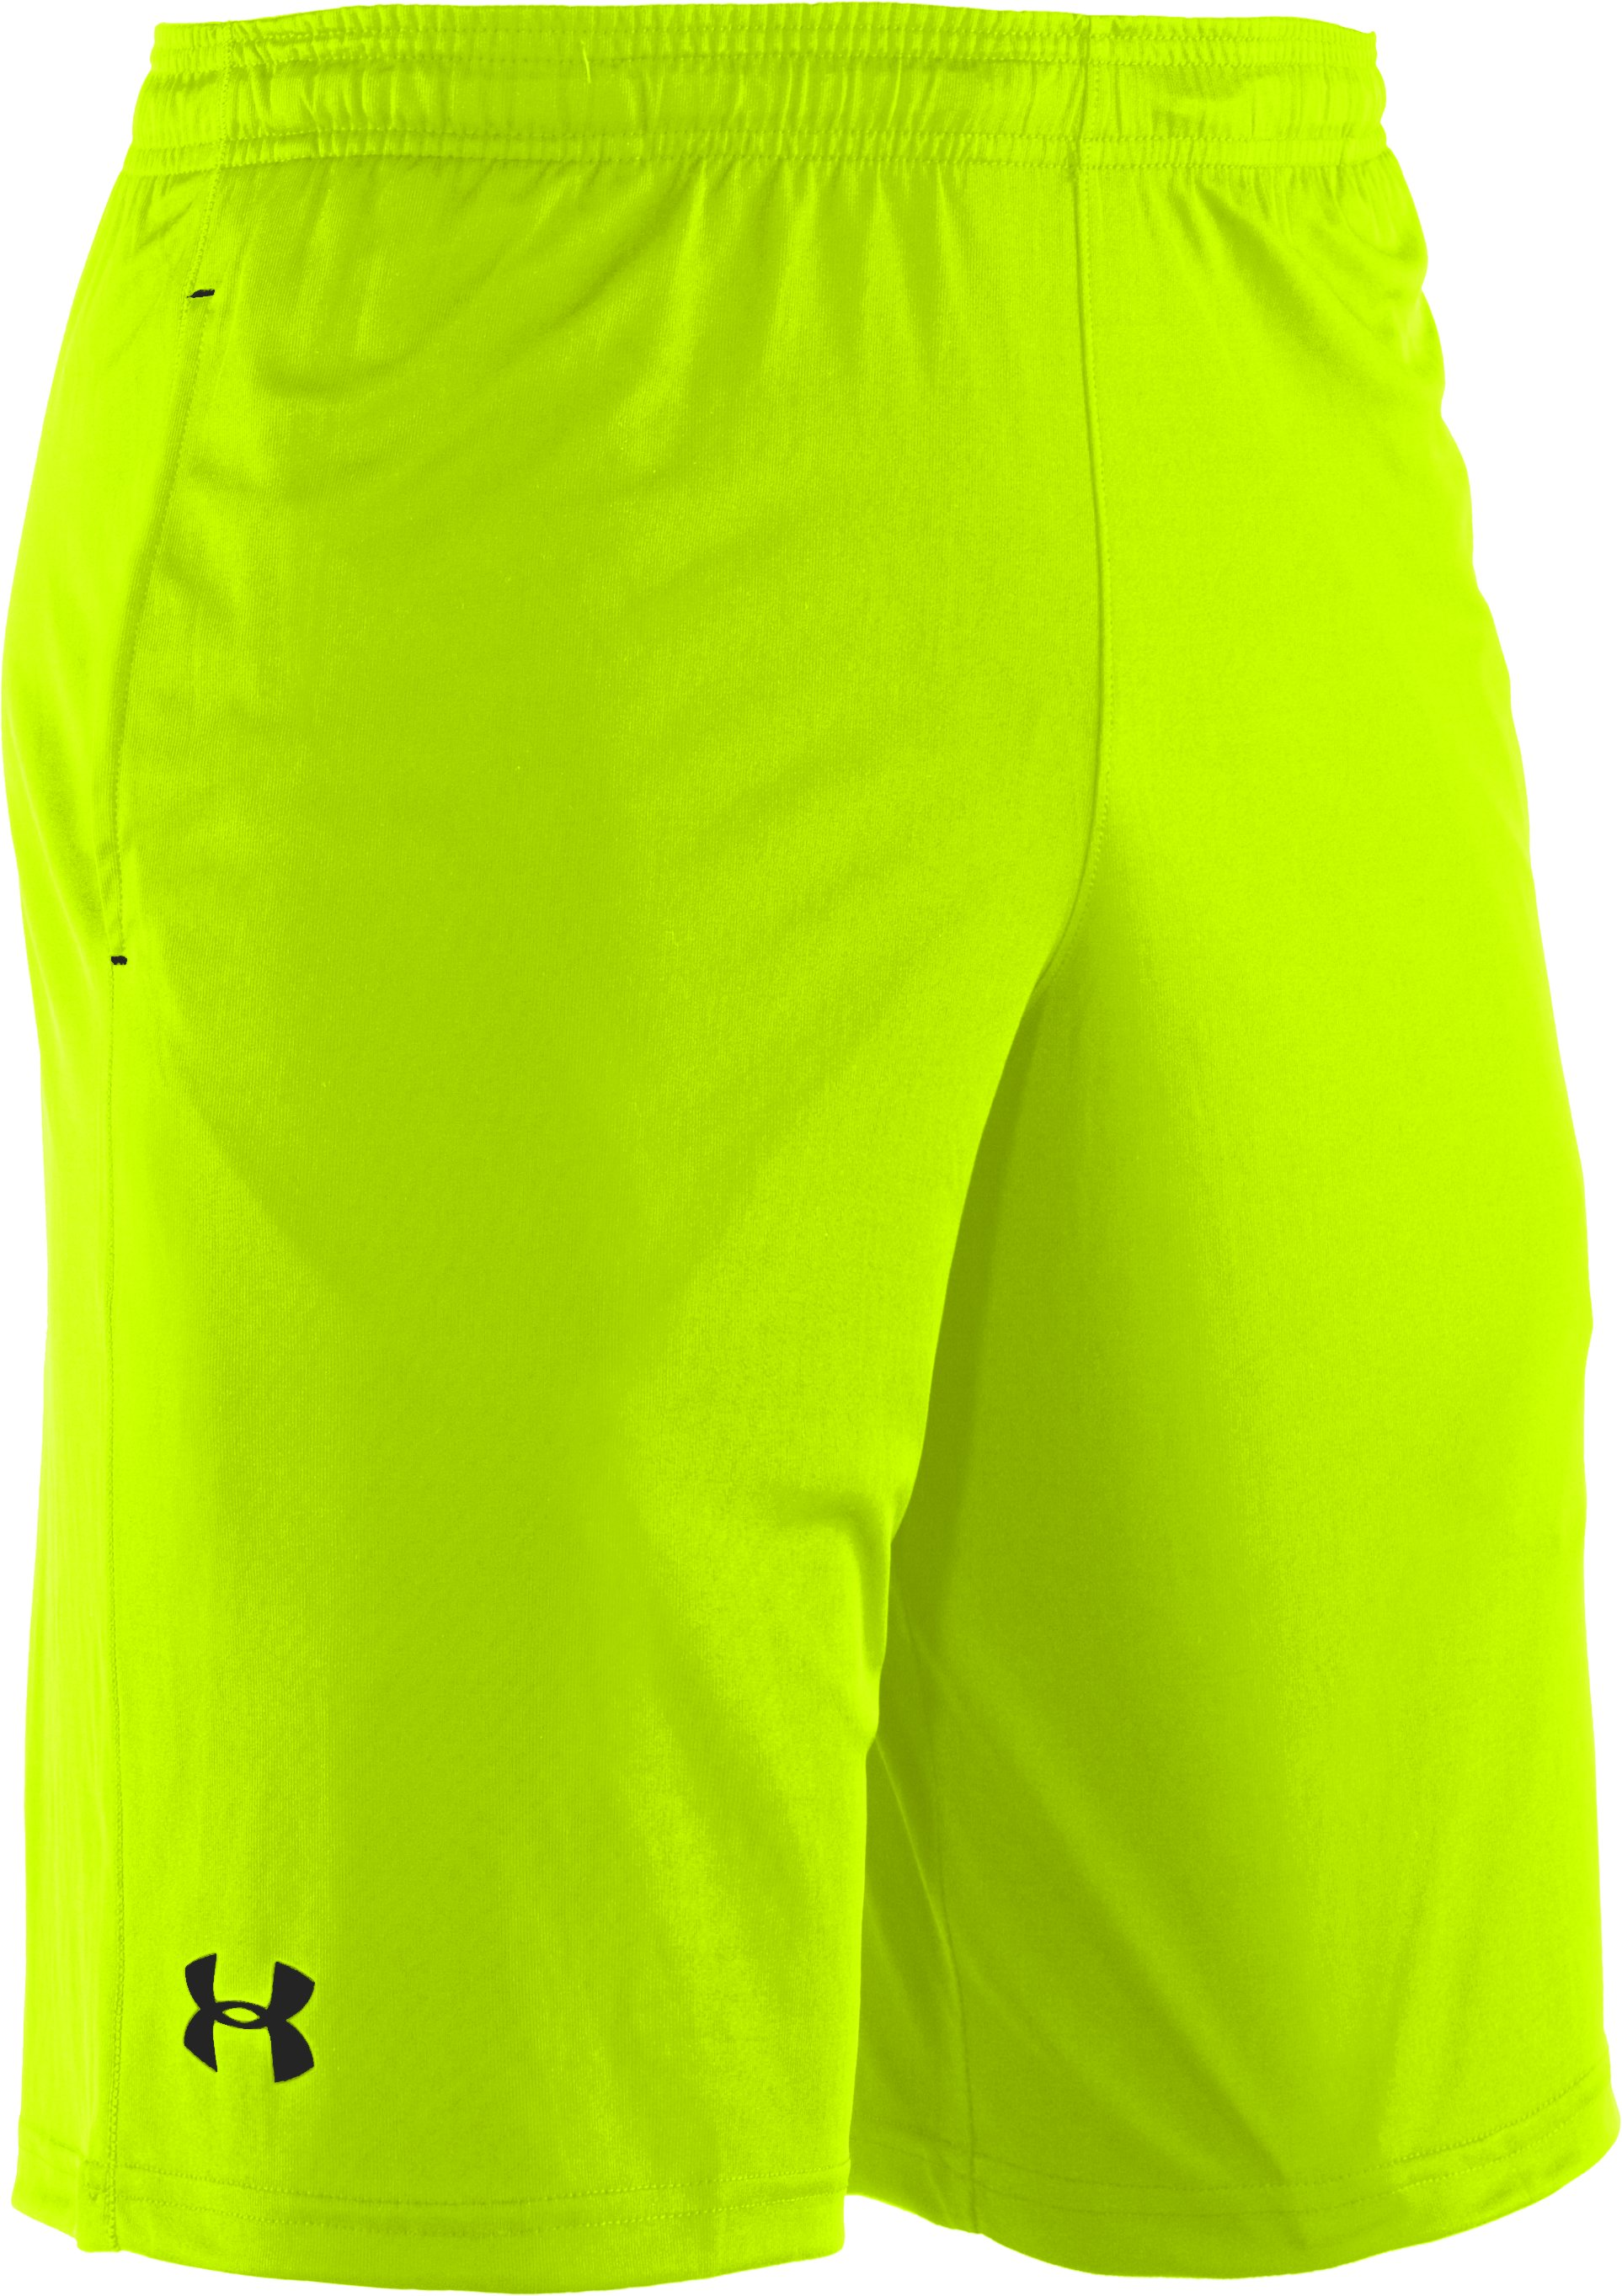 Men's UA Micro Solid Shorts, High-Vis Yellow